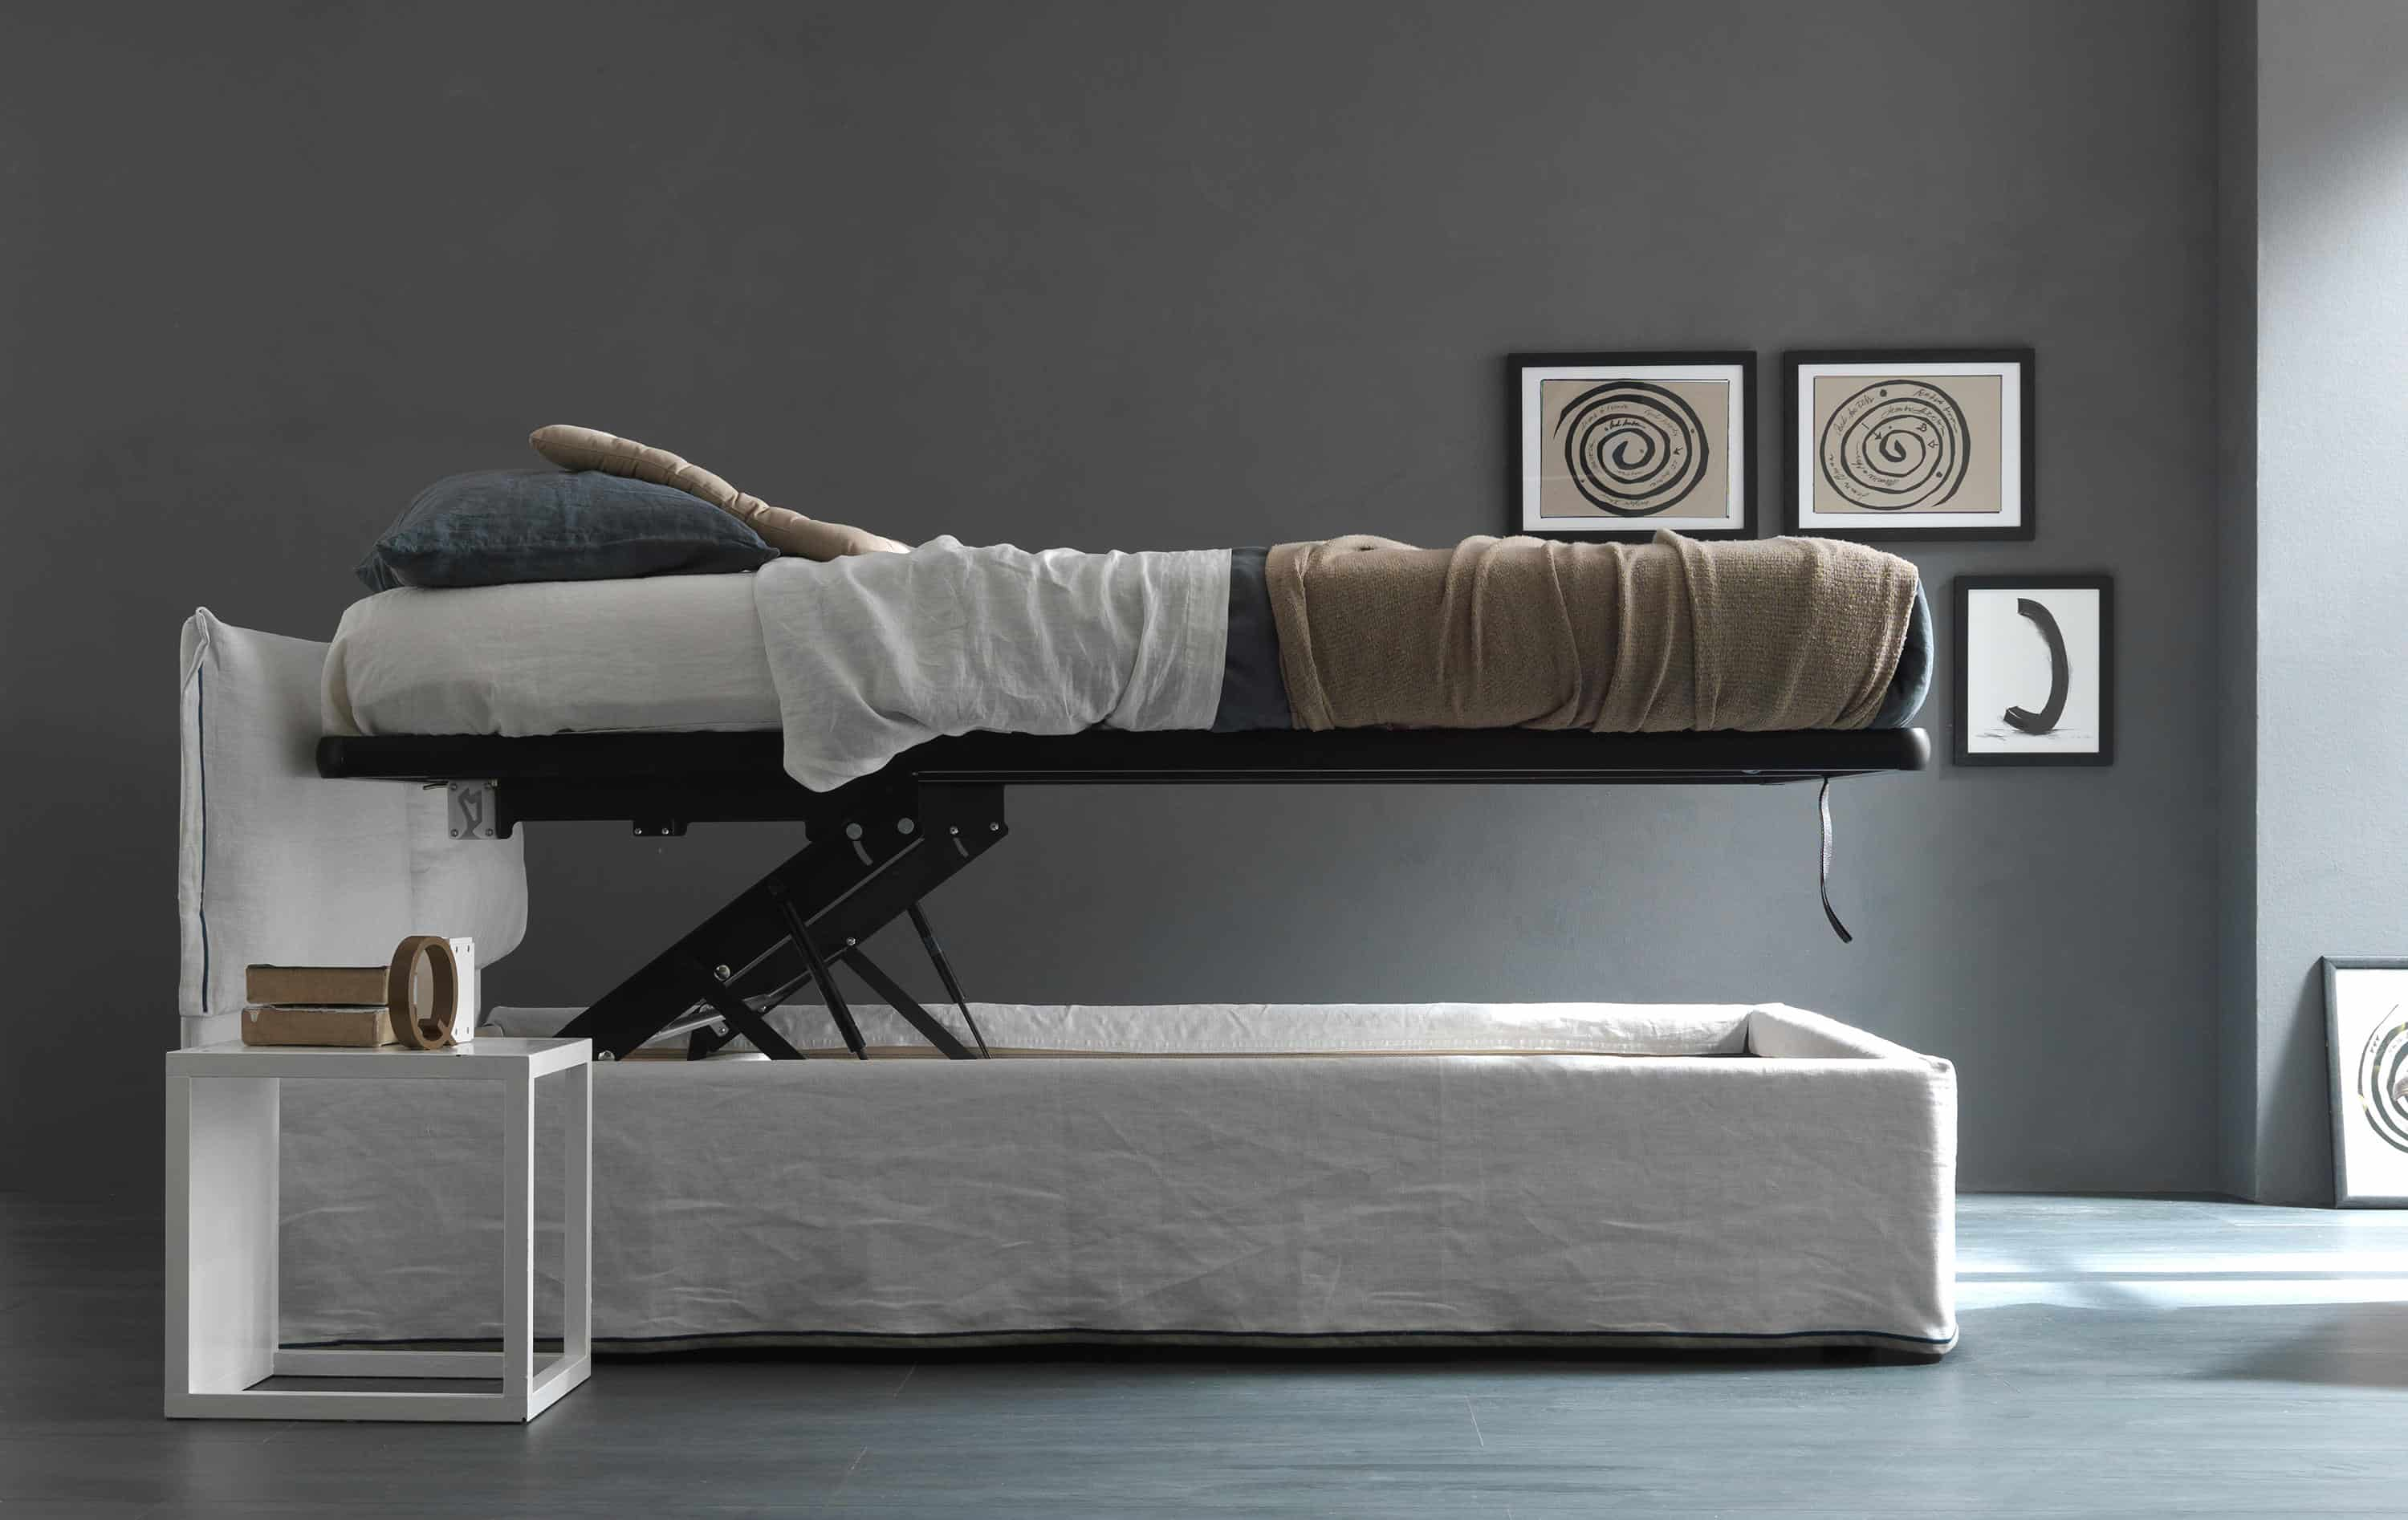 Buy A Bed 25 Of The Most Coolest Beds You Can Actually Buy